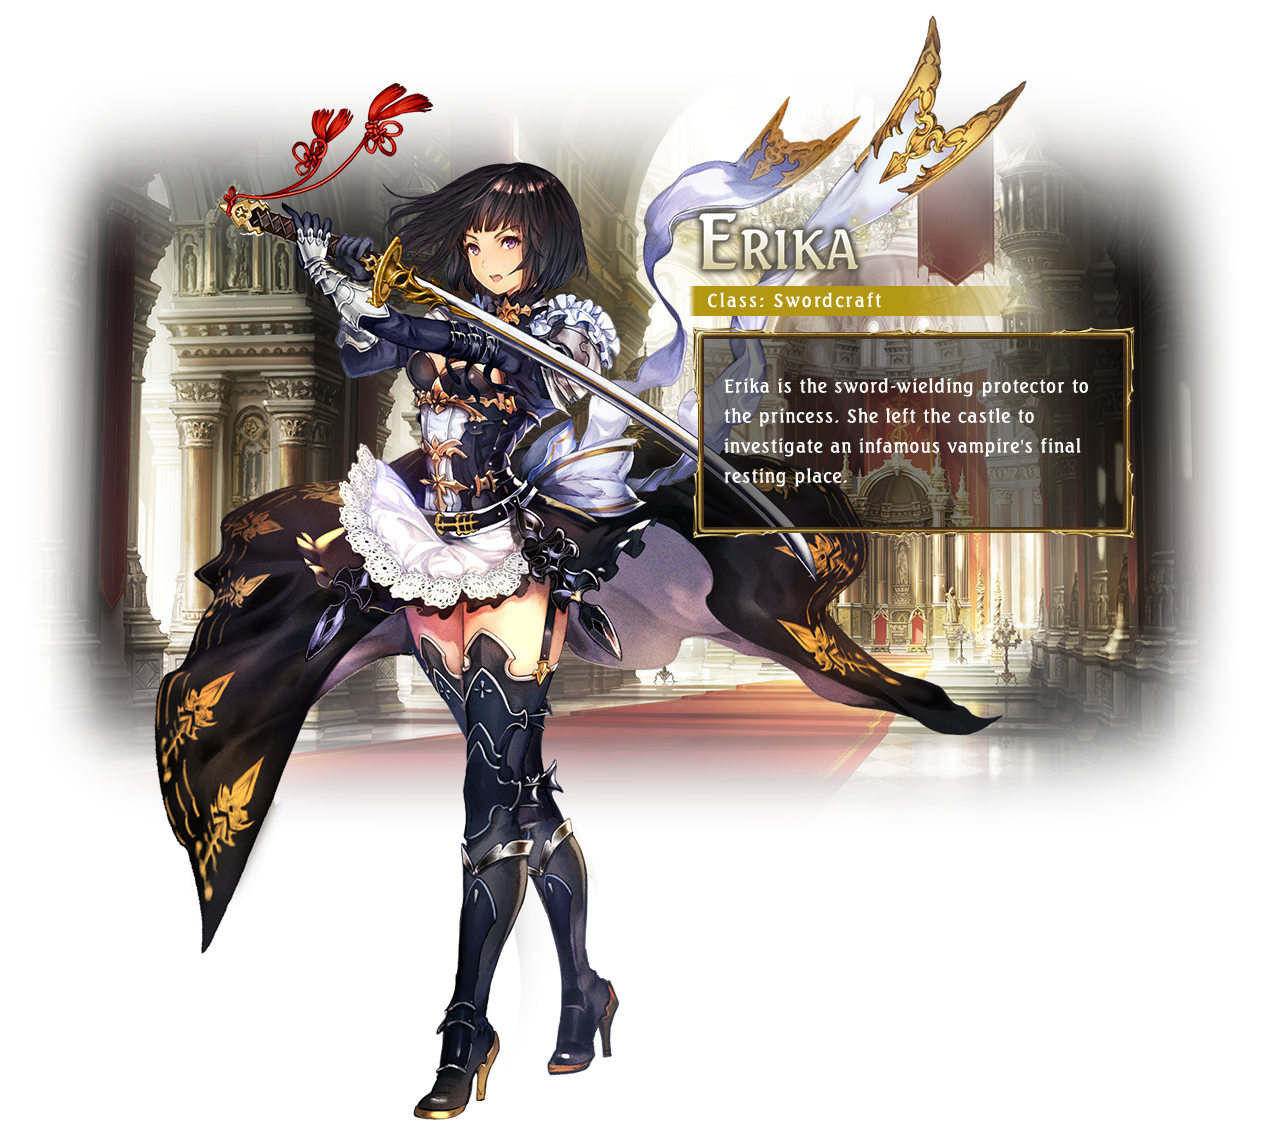 Erika / Class: Swordcraft / Erika is the sword-wielding protector to the princess. She left the castle to investigate an infamous vampire's final resting place.